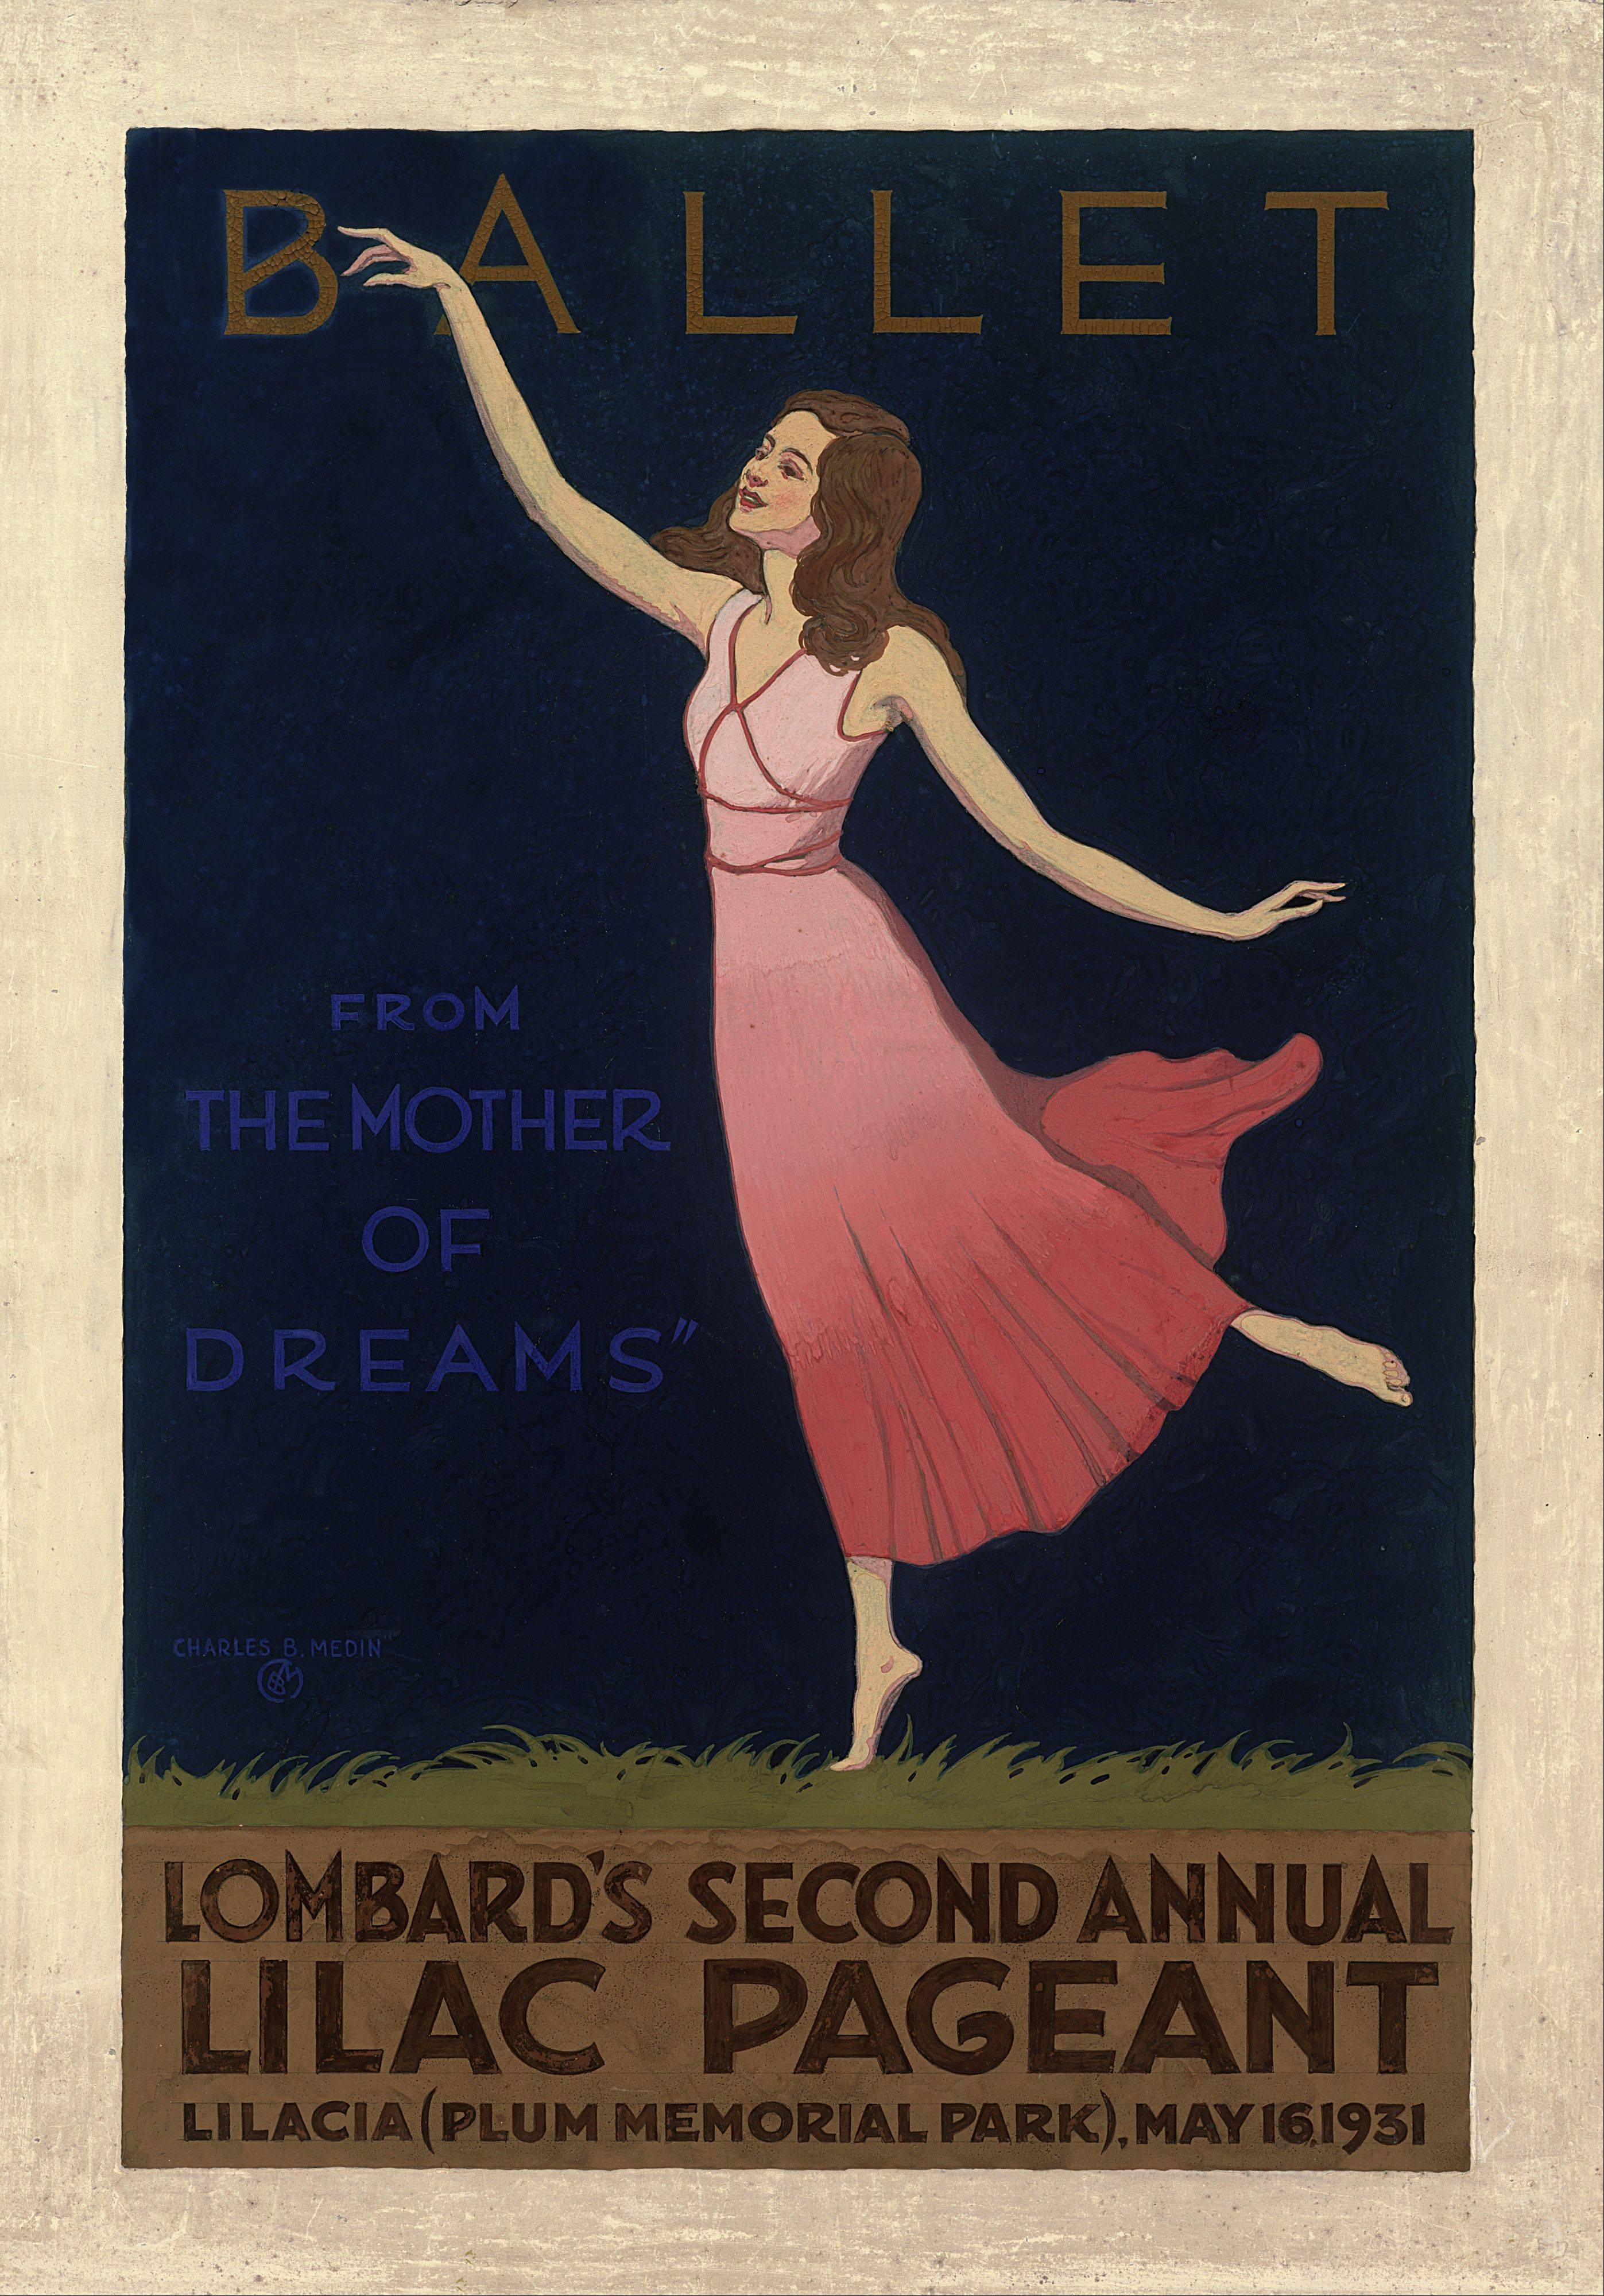 Artist Charles Medin painted this poster and four others in the Art Deco style to advertise early Lilac Time festivities in the 1930s. The Lombard Historical Society is selling the posters for $10 or $50, depending on the size, during Lilac Time from May 5 to 20.